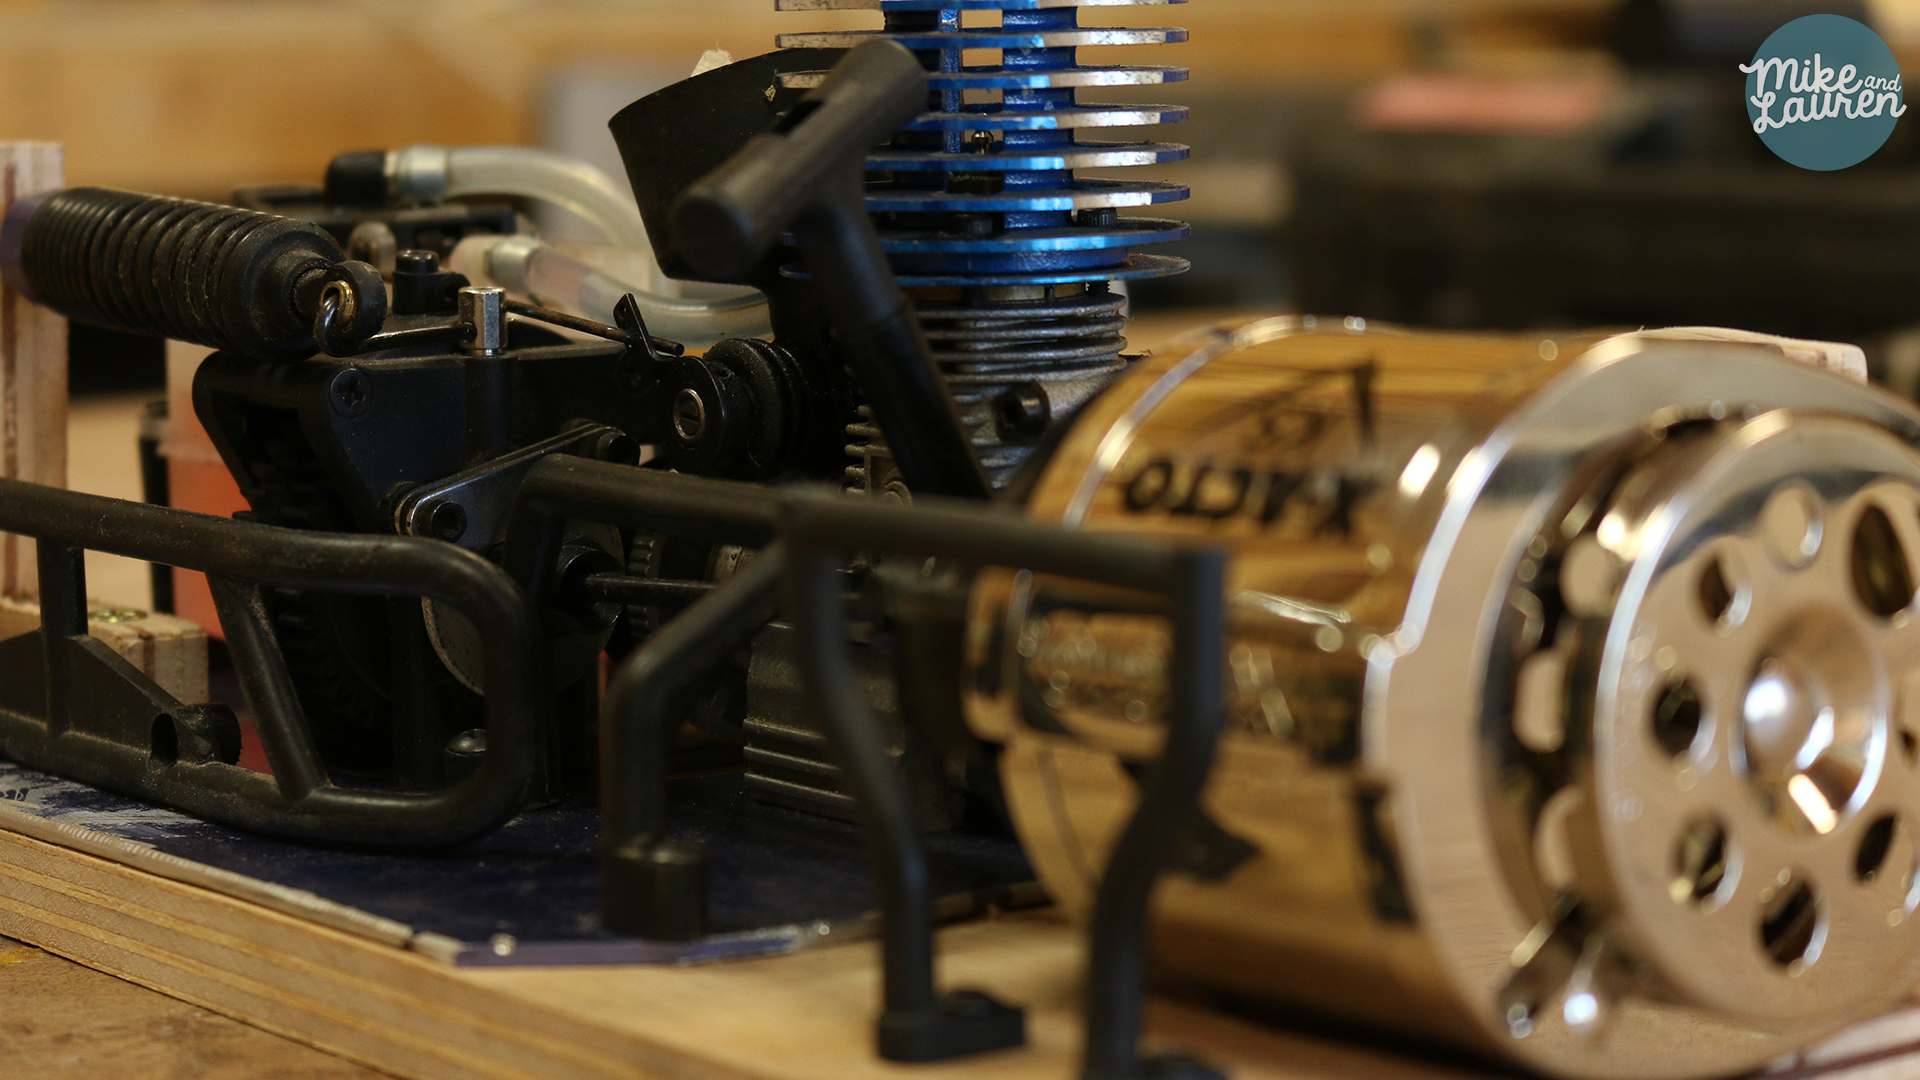 Turbocharge a Pencil Sharpener with an R/C Car Engine